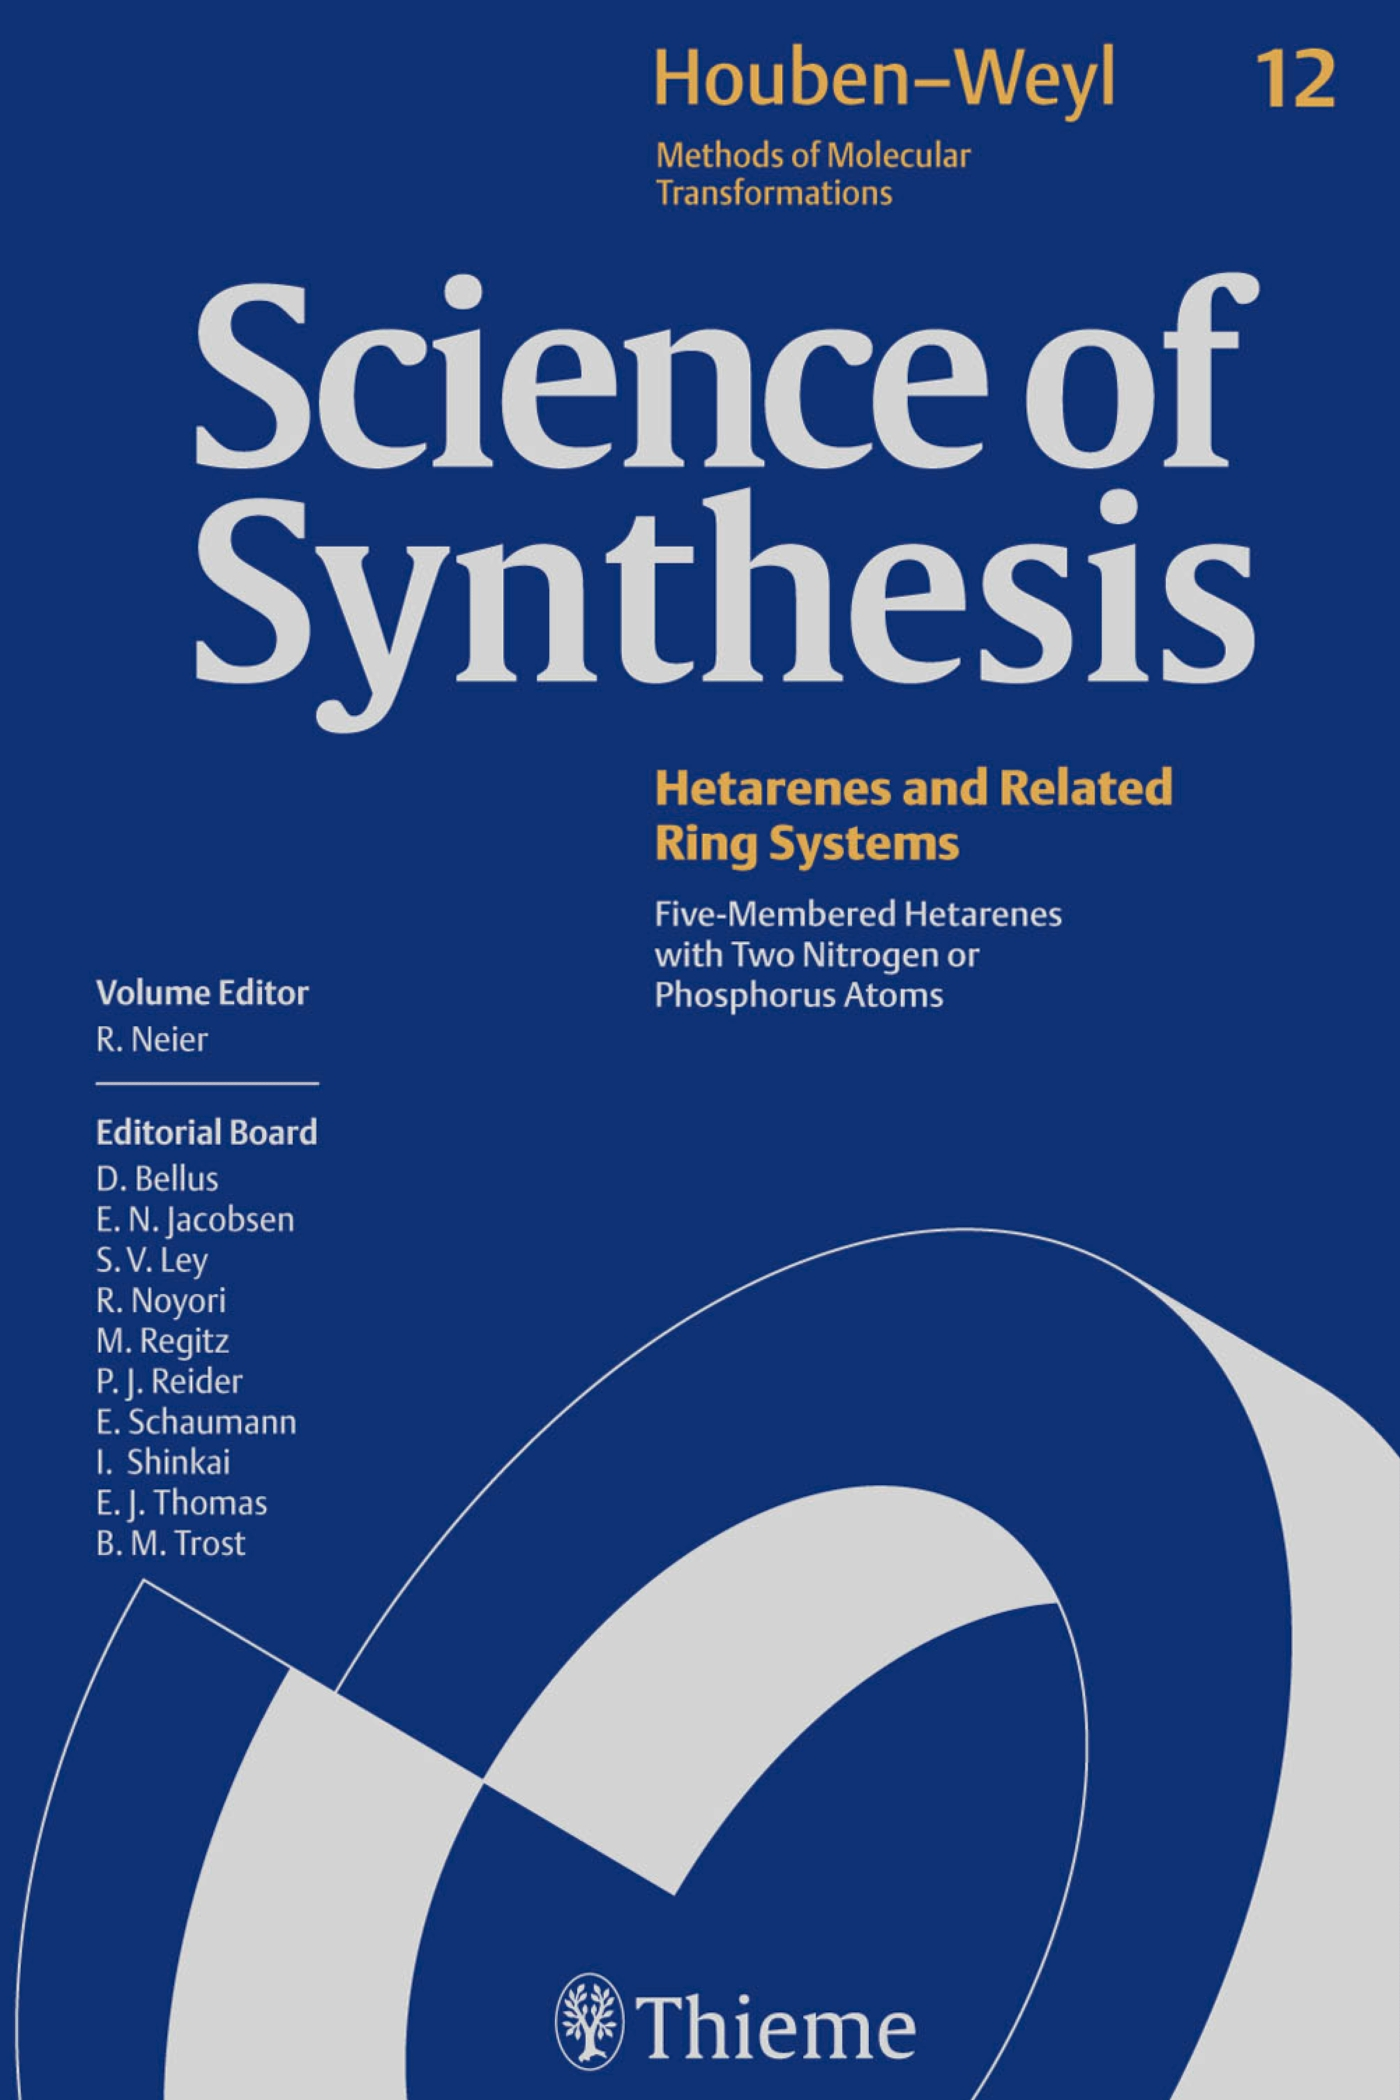 Science of Synthesis: Houben-Weyl Methods of Molecular Transformations  Vol. 12